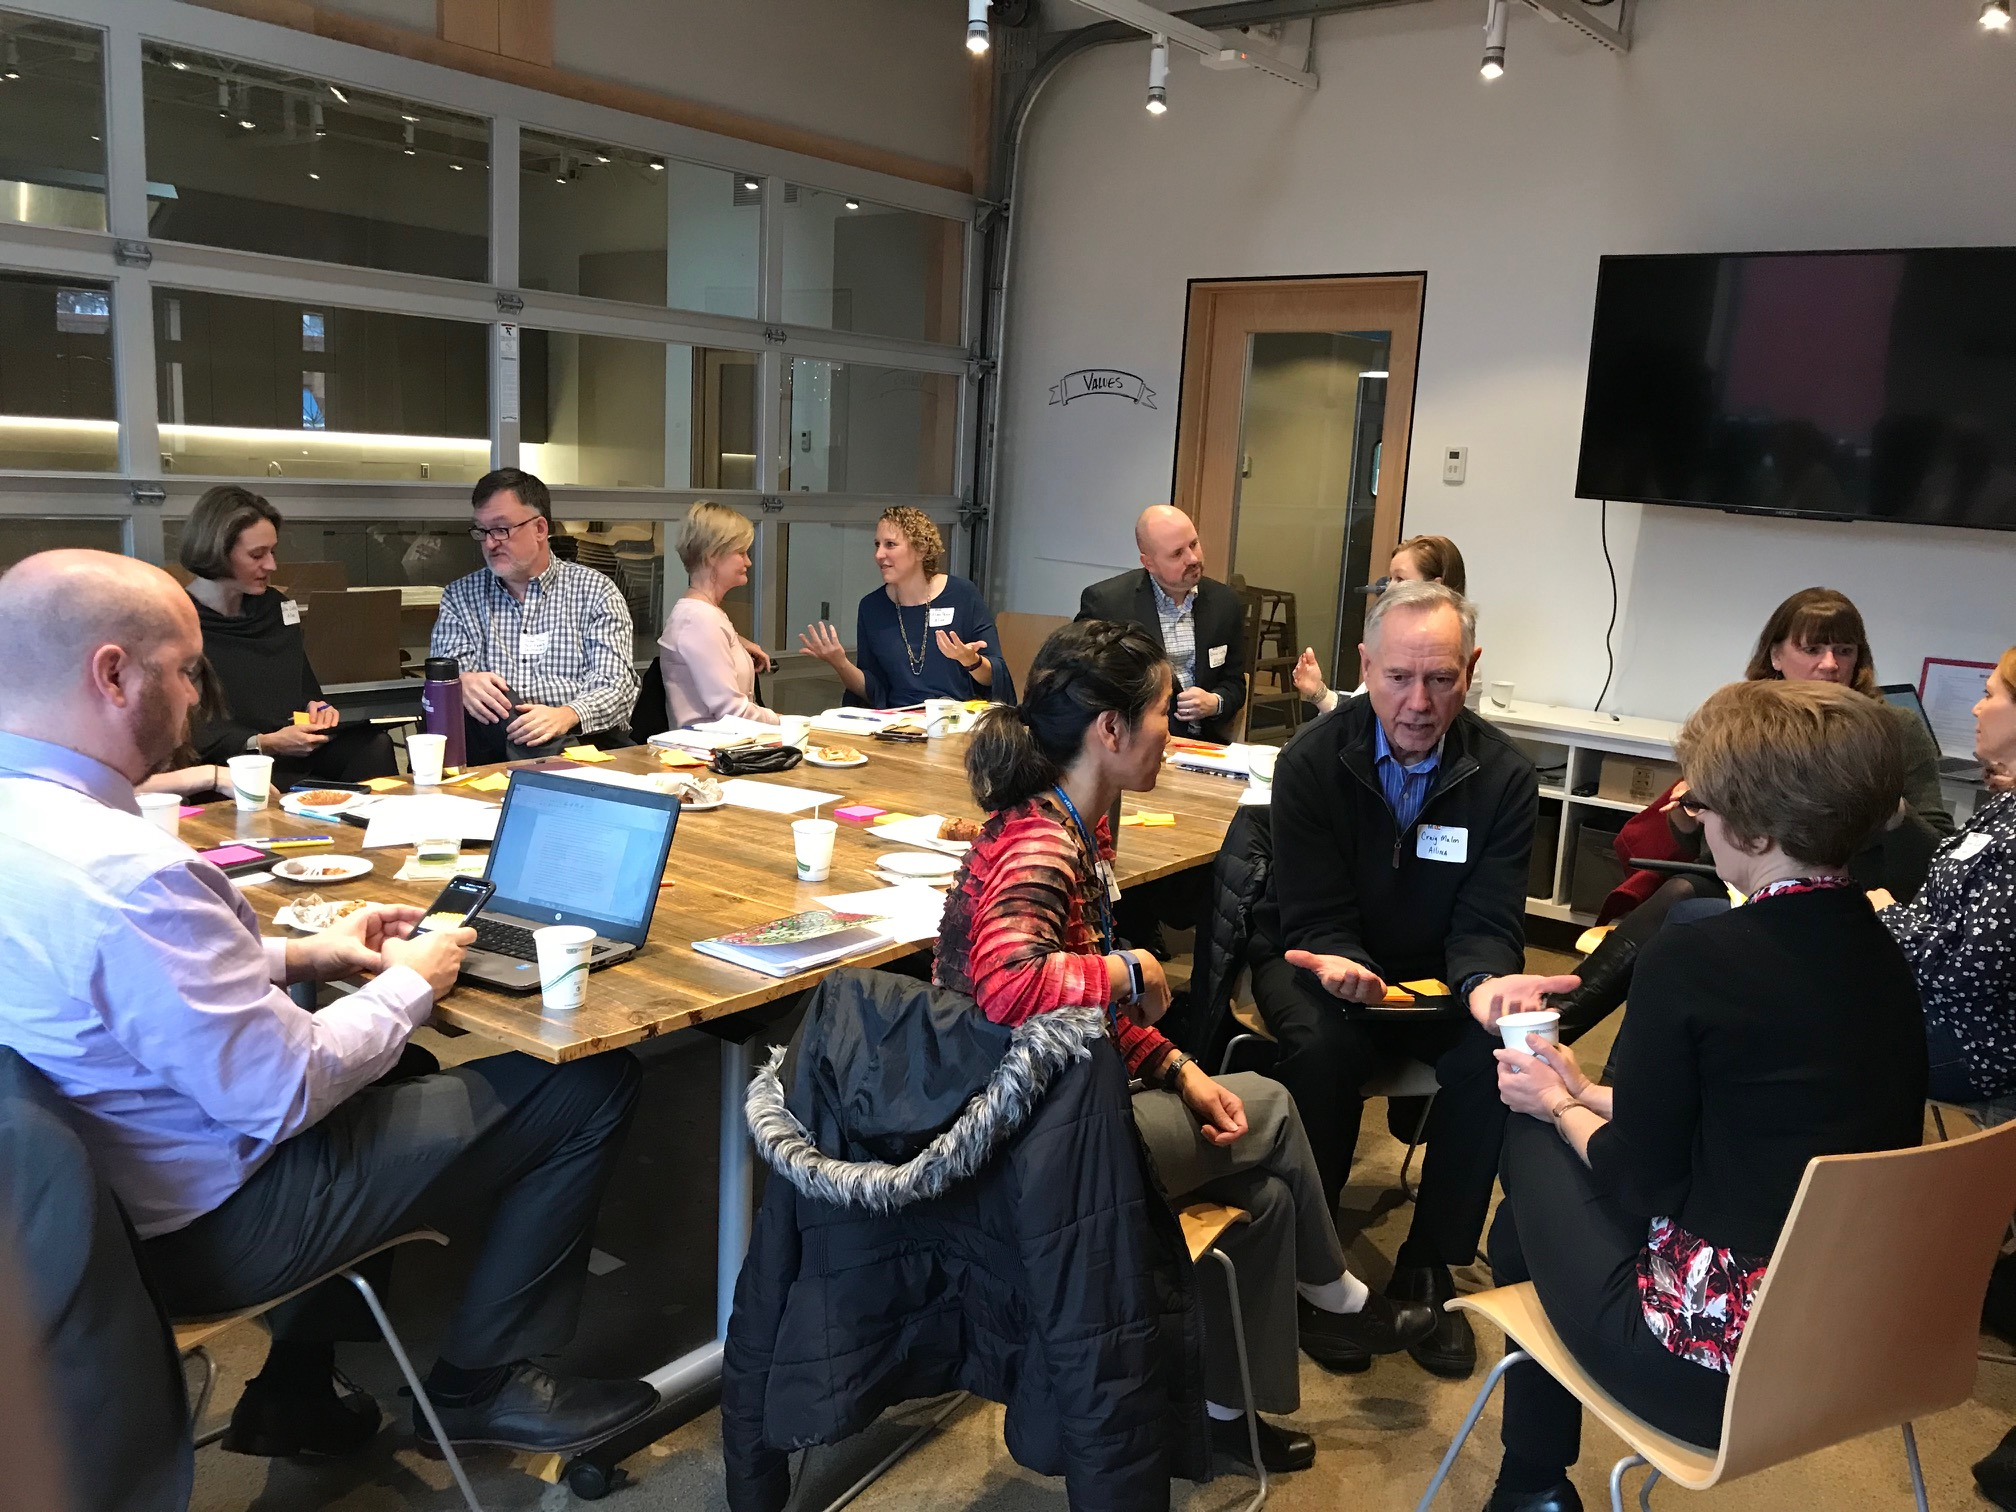 88094fc44 Since MACC's member Summit we've been exploring what it could look like to  engage with health care and explore the potential for partnership to  address the ...